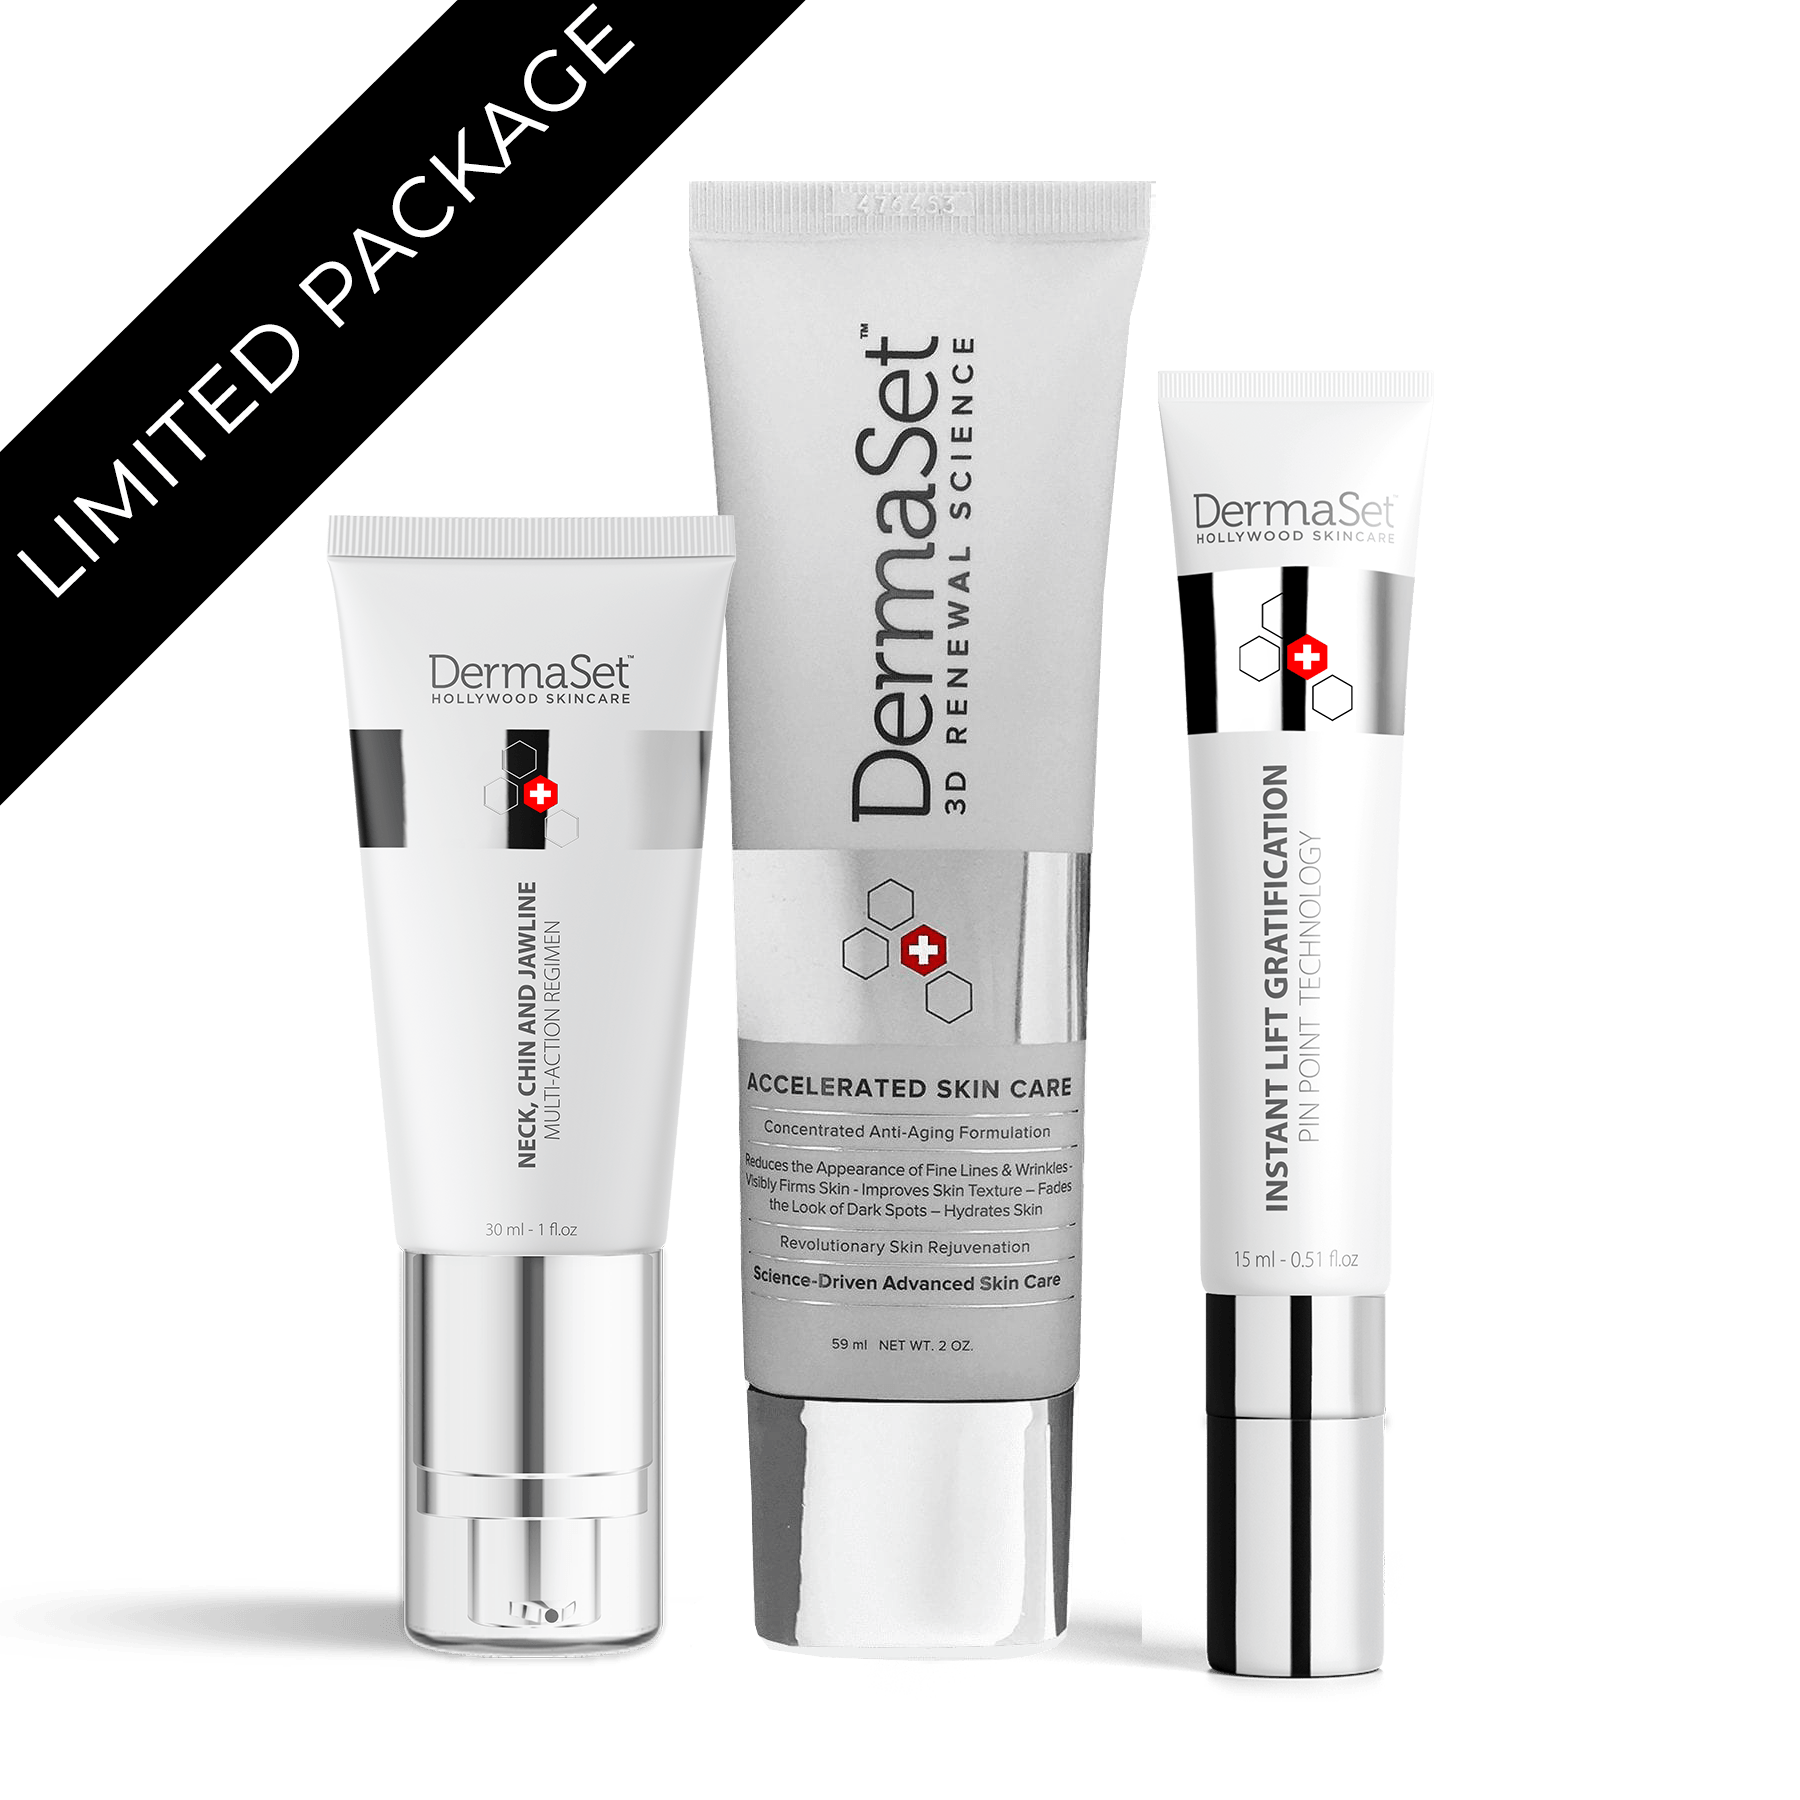 Super Facelift Bundle